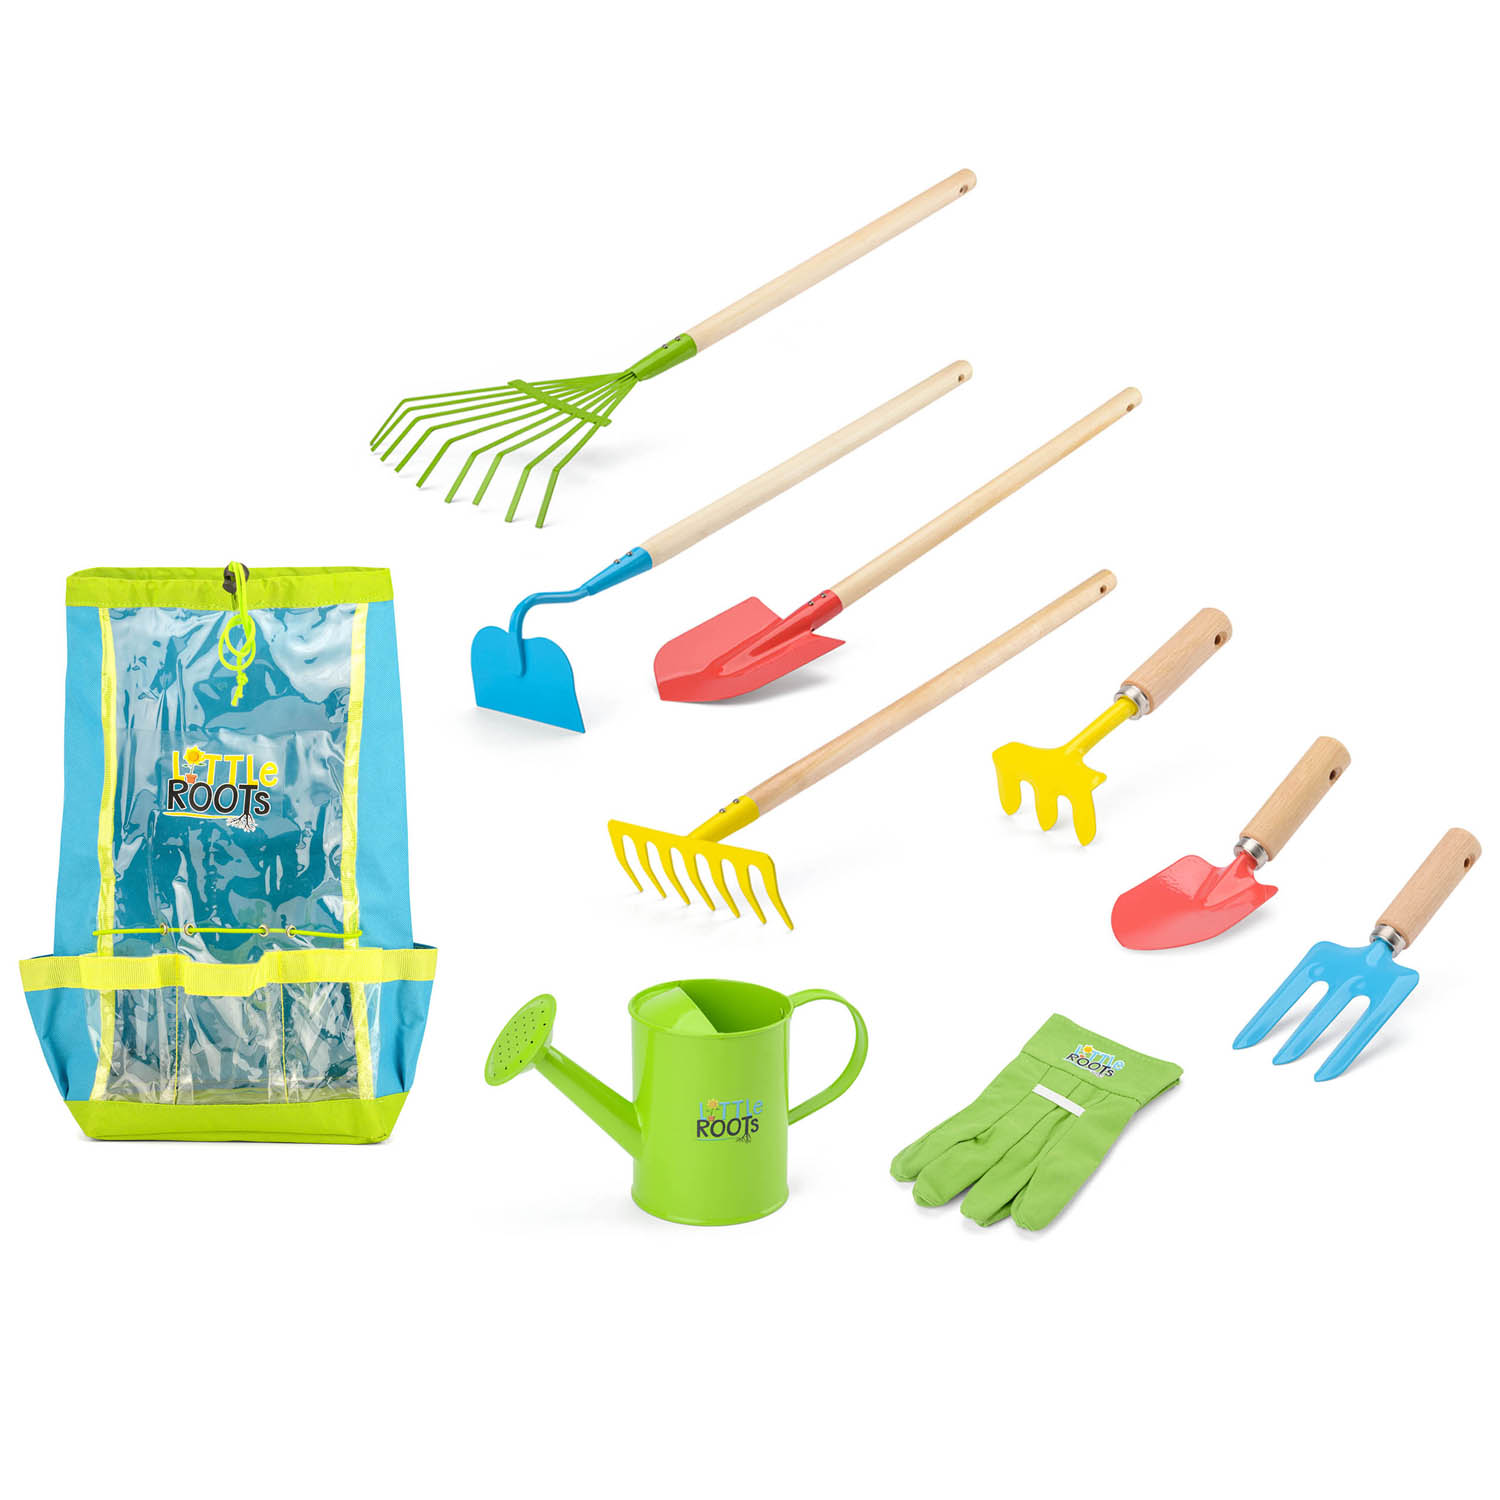 Little-Roots-Kids-Wheelbarrow-Or-Gardening-Kits-Garden-Tools-Outdoor-Activity thumbnail 8